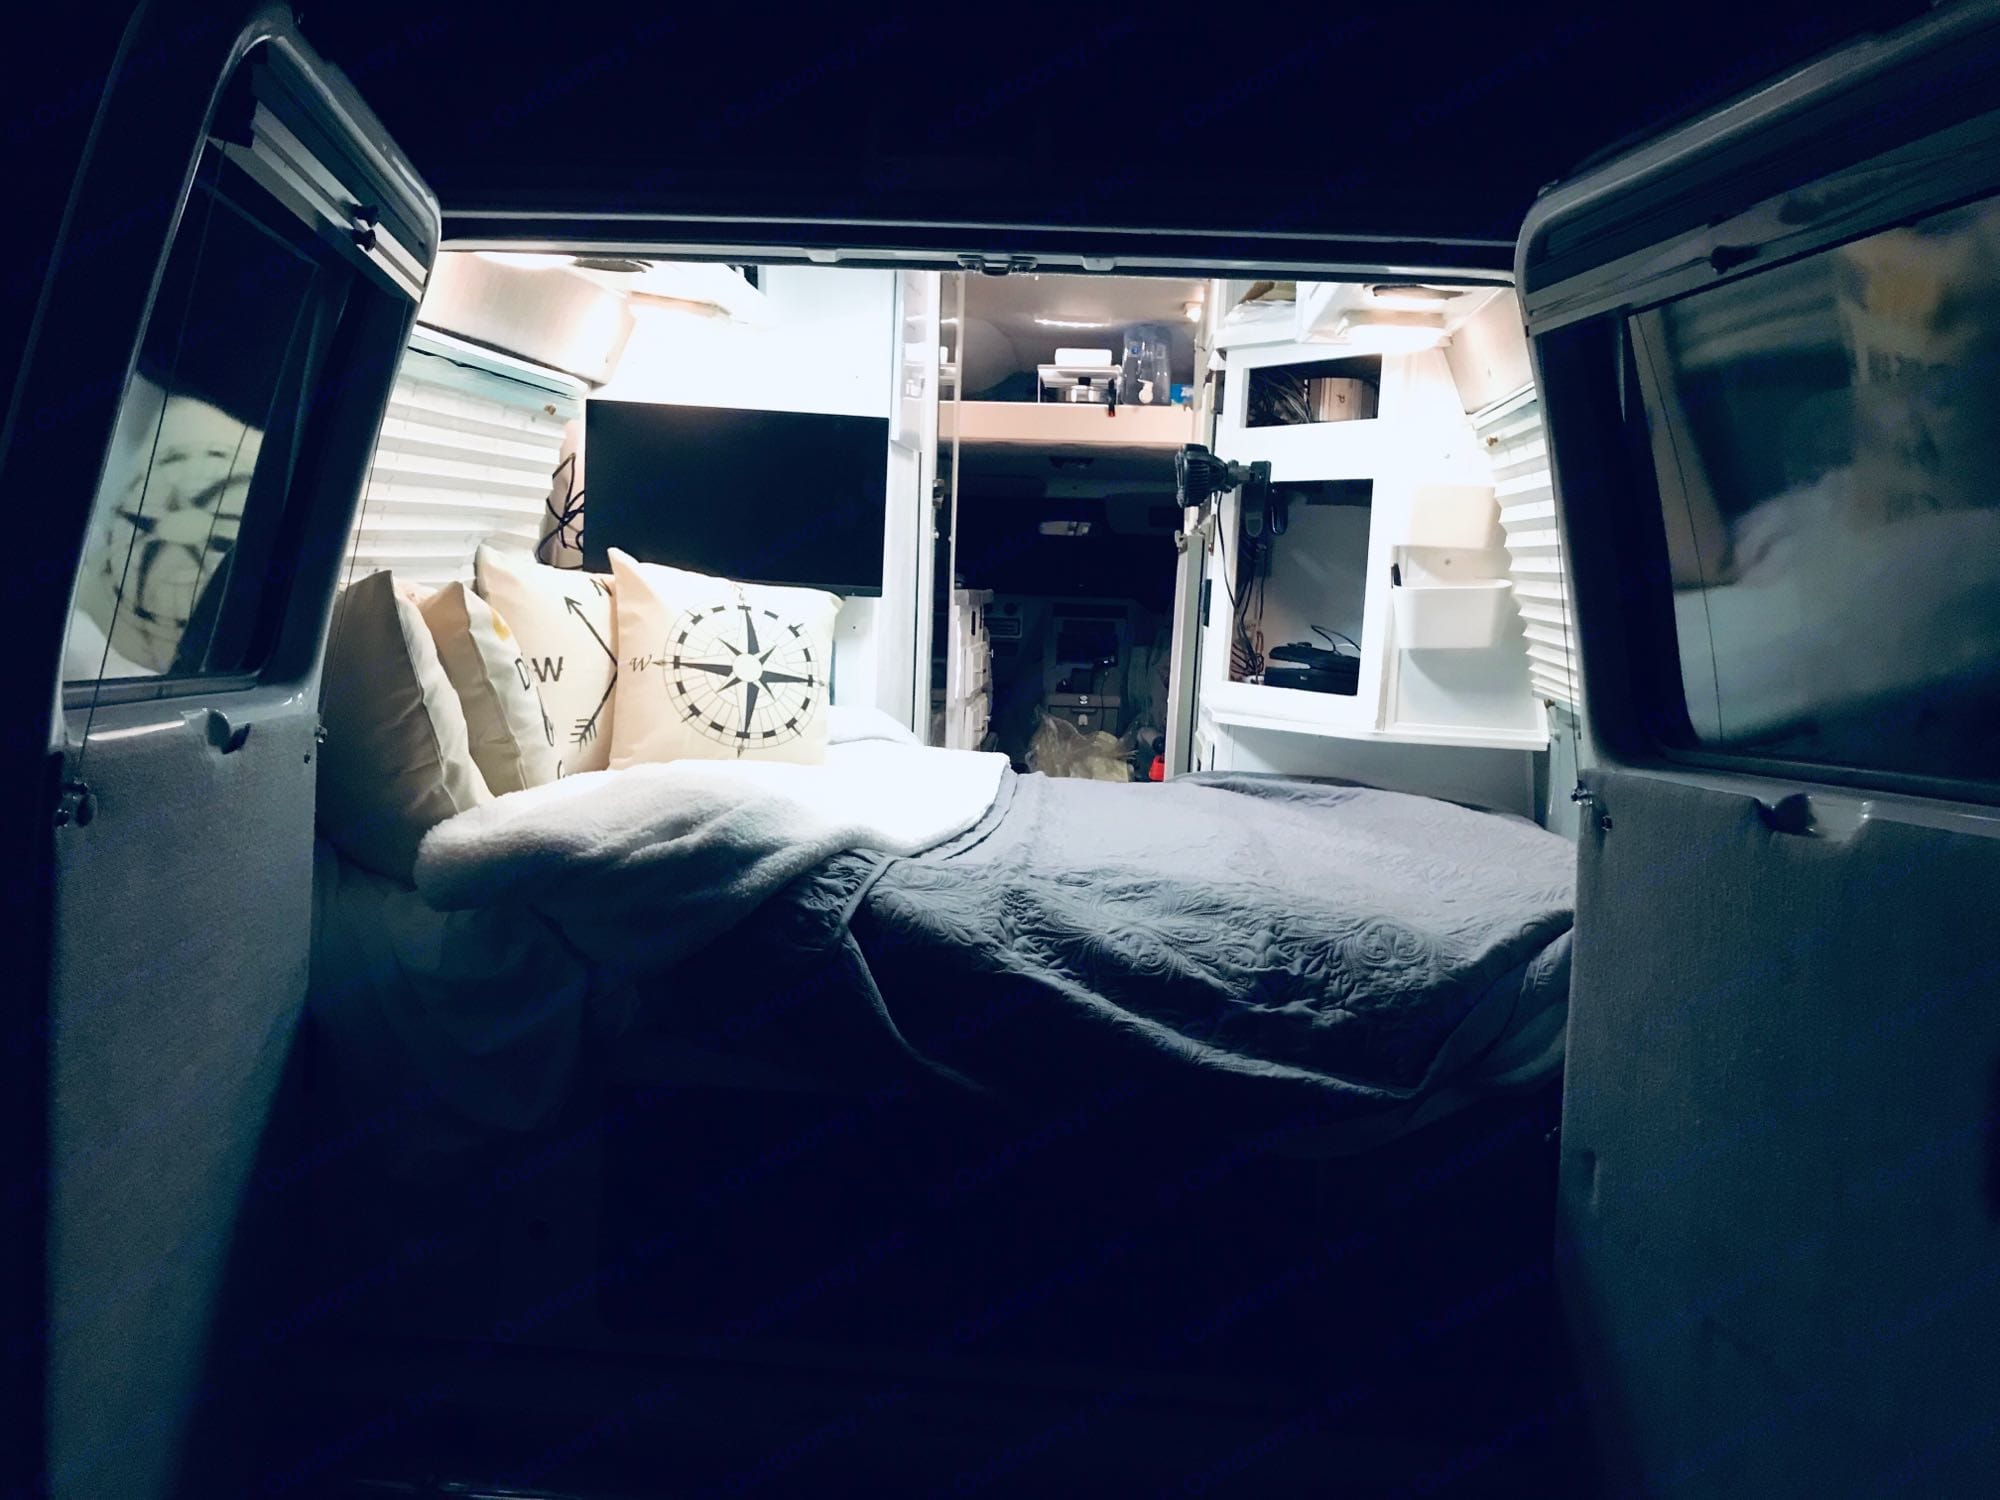 Sleep in the full sized bed with the back open to the cool evening air! Or, cuddle up inside and turn on the furnace!. Chevrolet G30 1994